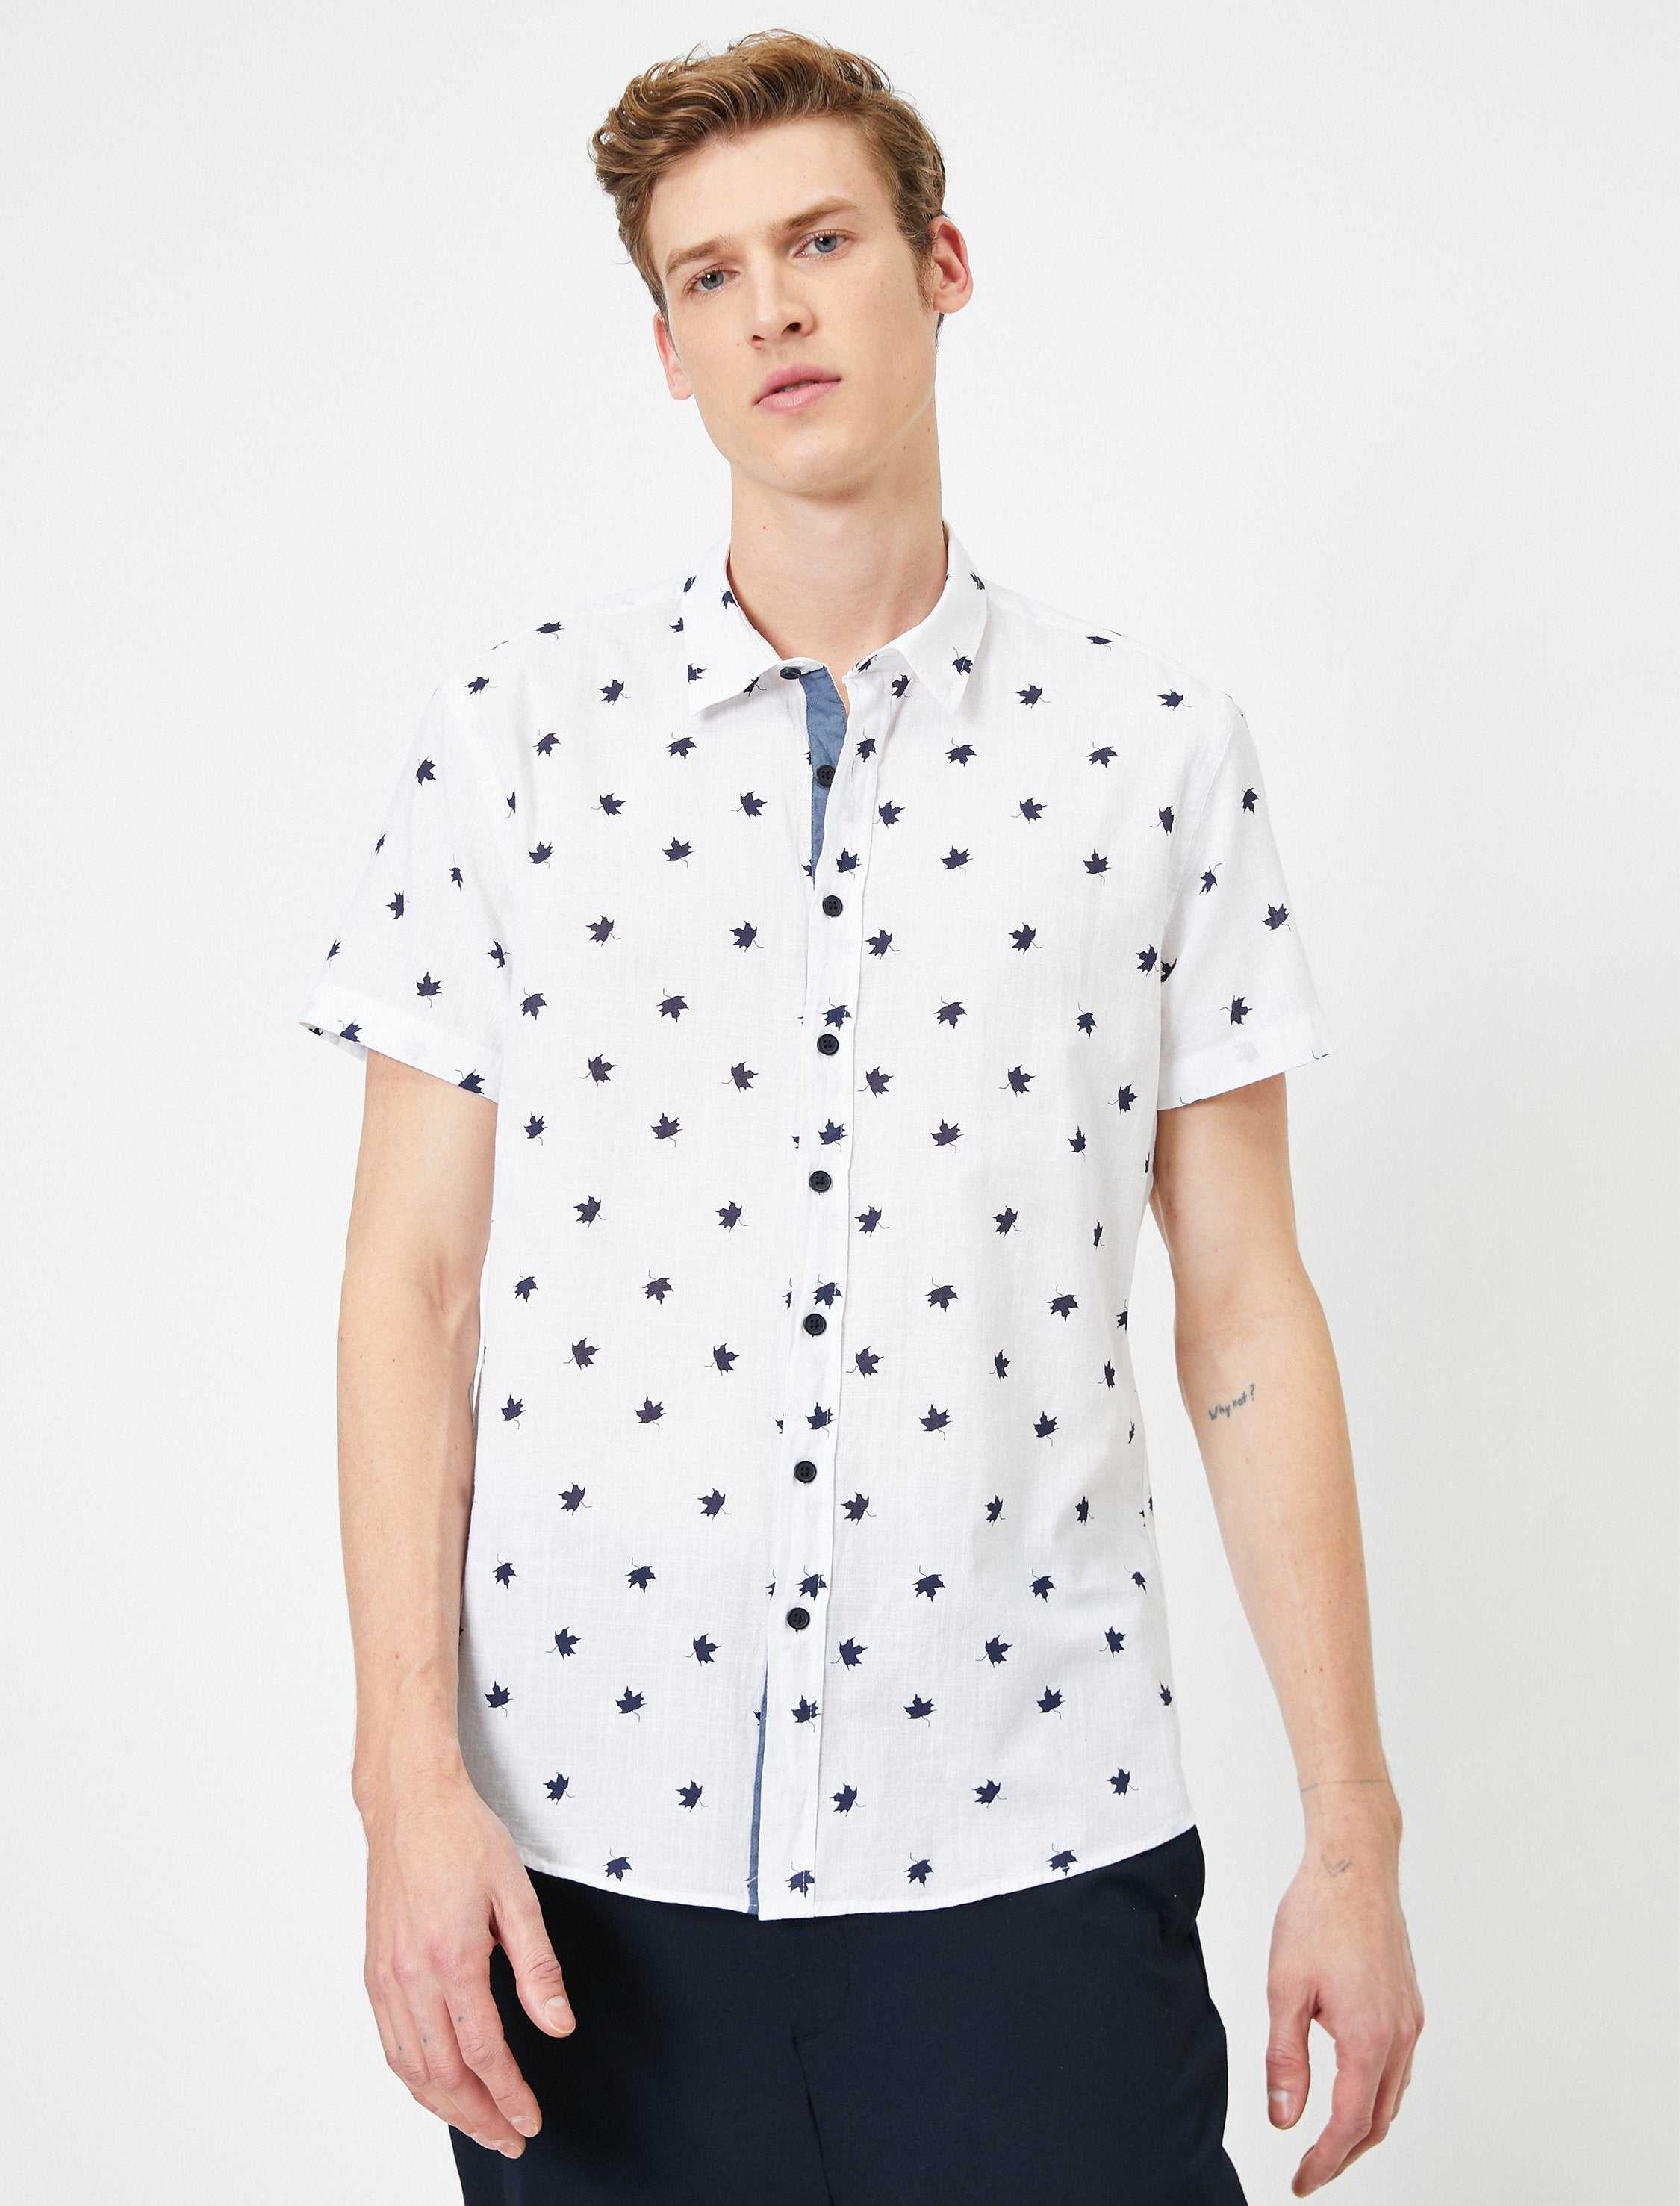 Maple Leaf Printed SS Shirt in White